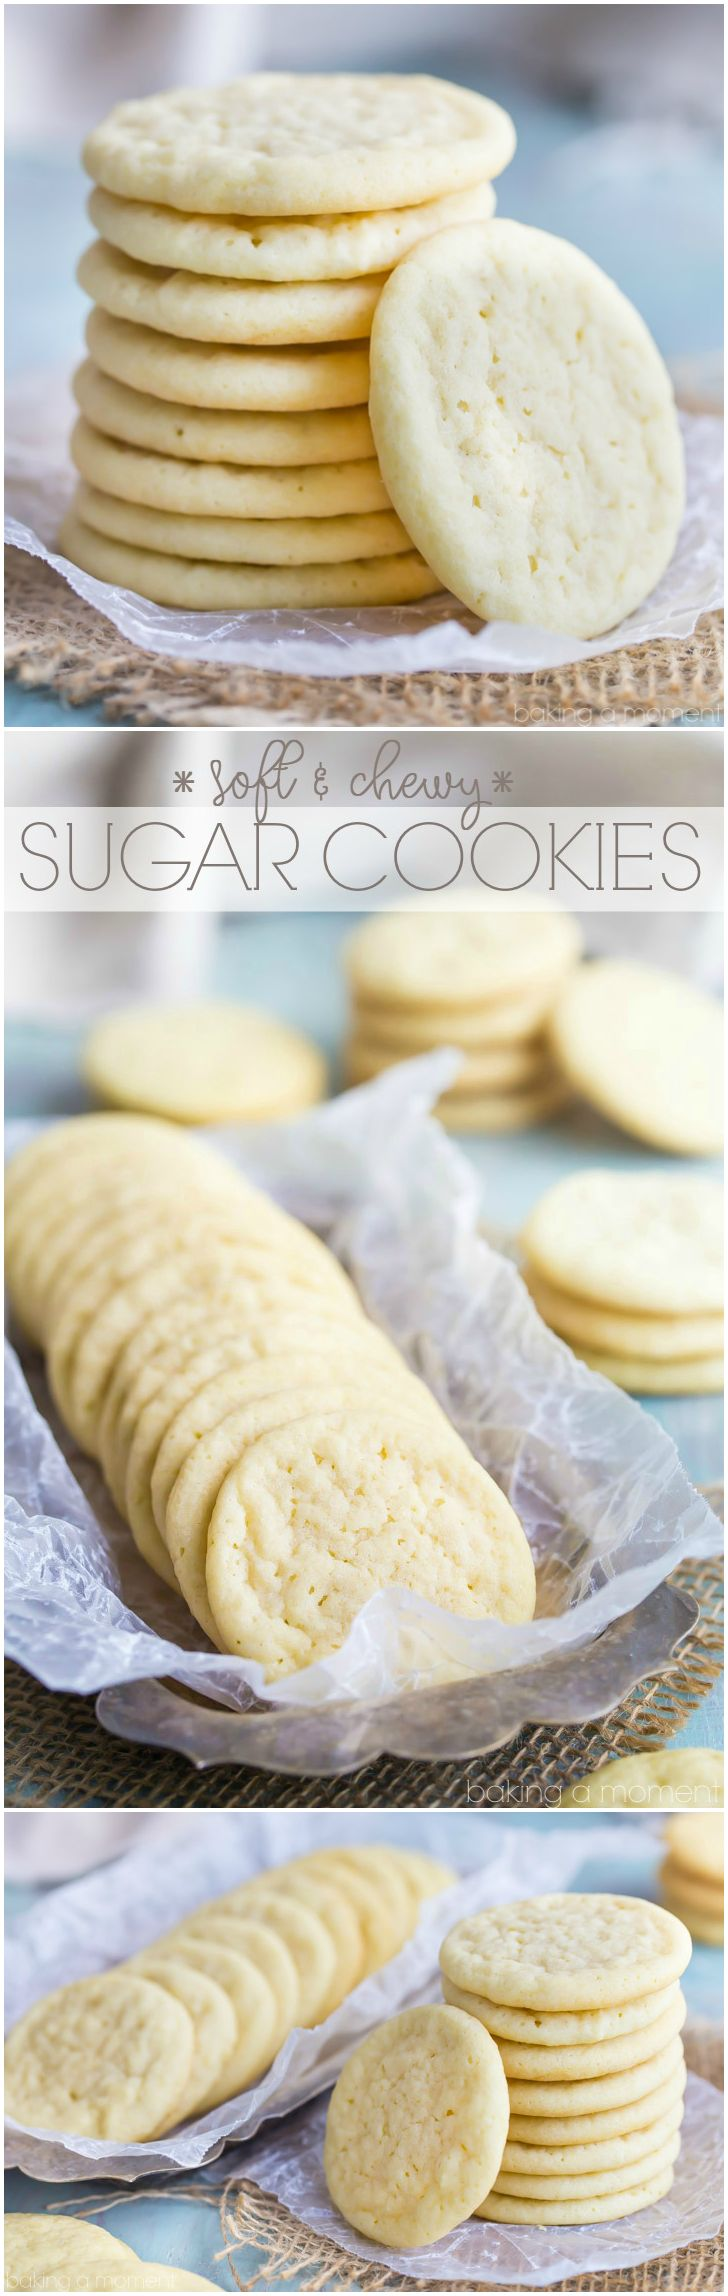 Soft and Chewy Sugar Cookies- this is my favorite recipe: great texture, buttery, and lots of vanilla!